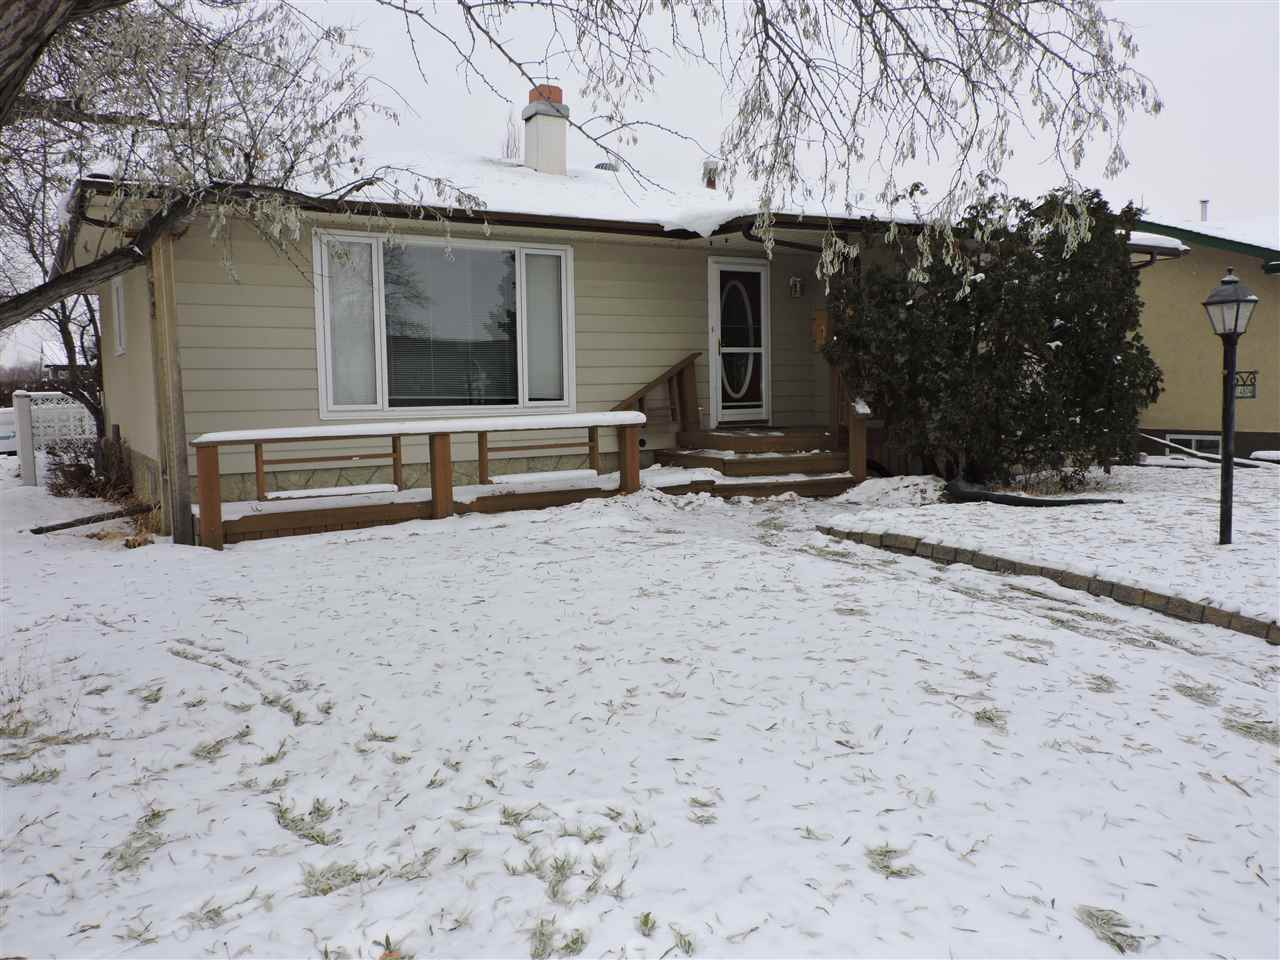 Calling all investors. Judicial sale. PRIME LOCATION!! Corner lot in well established area! This nearly 1200 sq.ft bungalow with a back split entrance has 4 bedrooms, 2.5 baths which includes master bedroom unsuite. This home has a large living room w/ fireplace as well as ample kitchen space. Basement is equipped with wet bar, laundry, bed, bath and fireplace in living room as well. Comes with detached double garage, fenced yard and beautiful front yard deck with McLeod community league and school across the street.